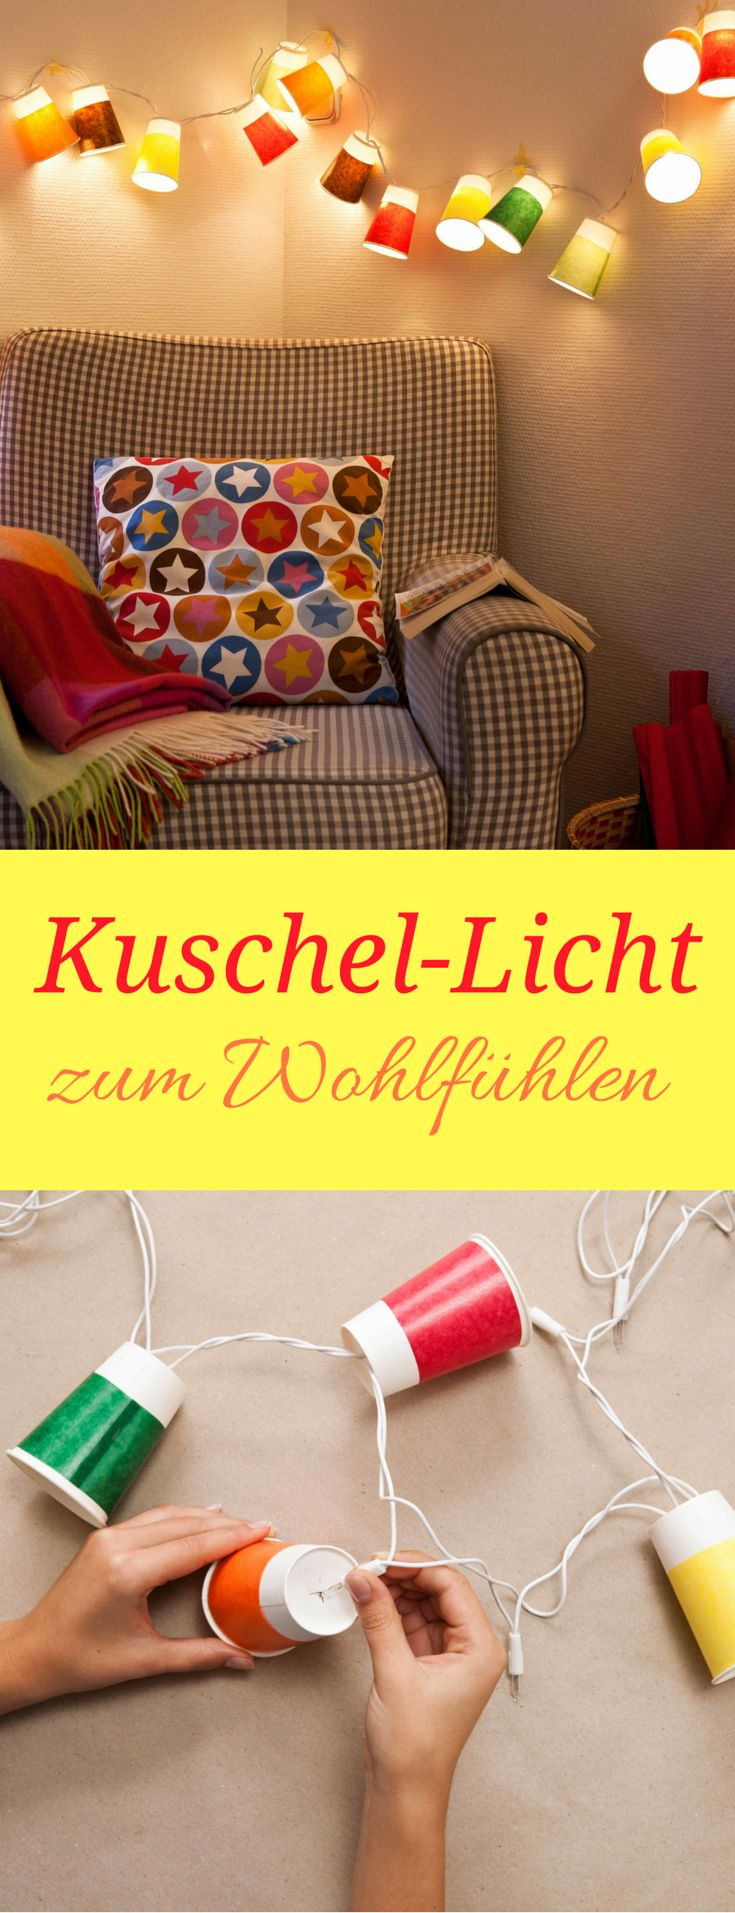 die besten 25 lichterkette basteln ideen auf pinterest diy lichterkette hinterhof. Black Bedroom Furniture Sets. Home Design Ideas